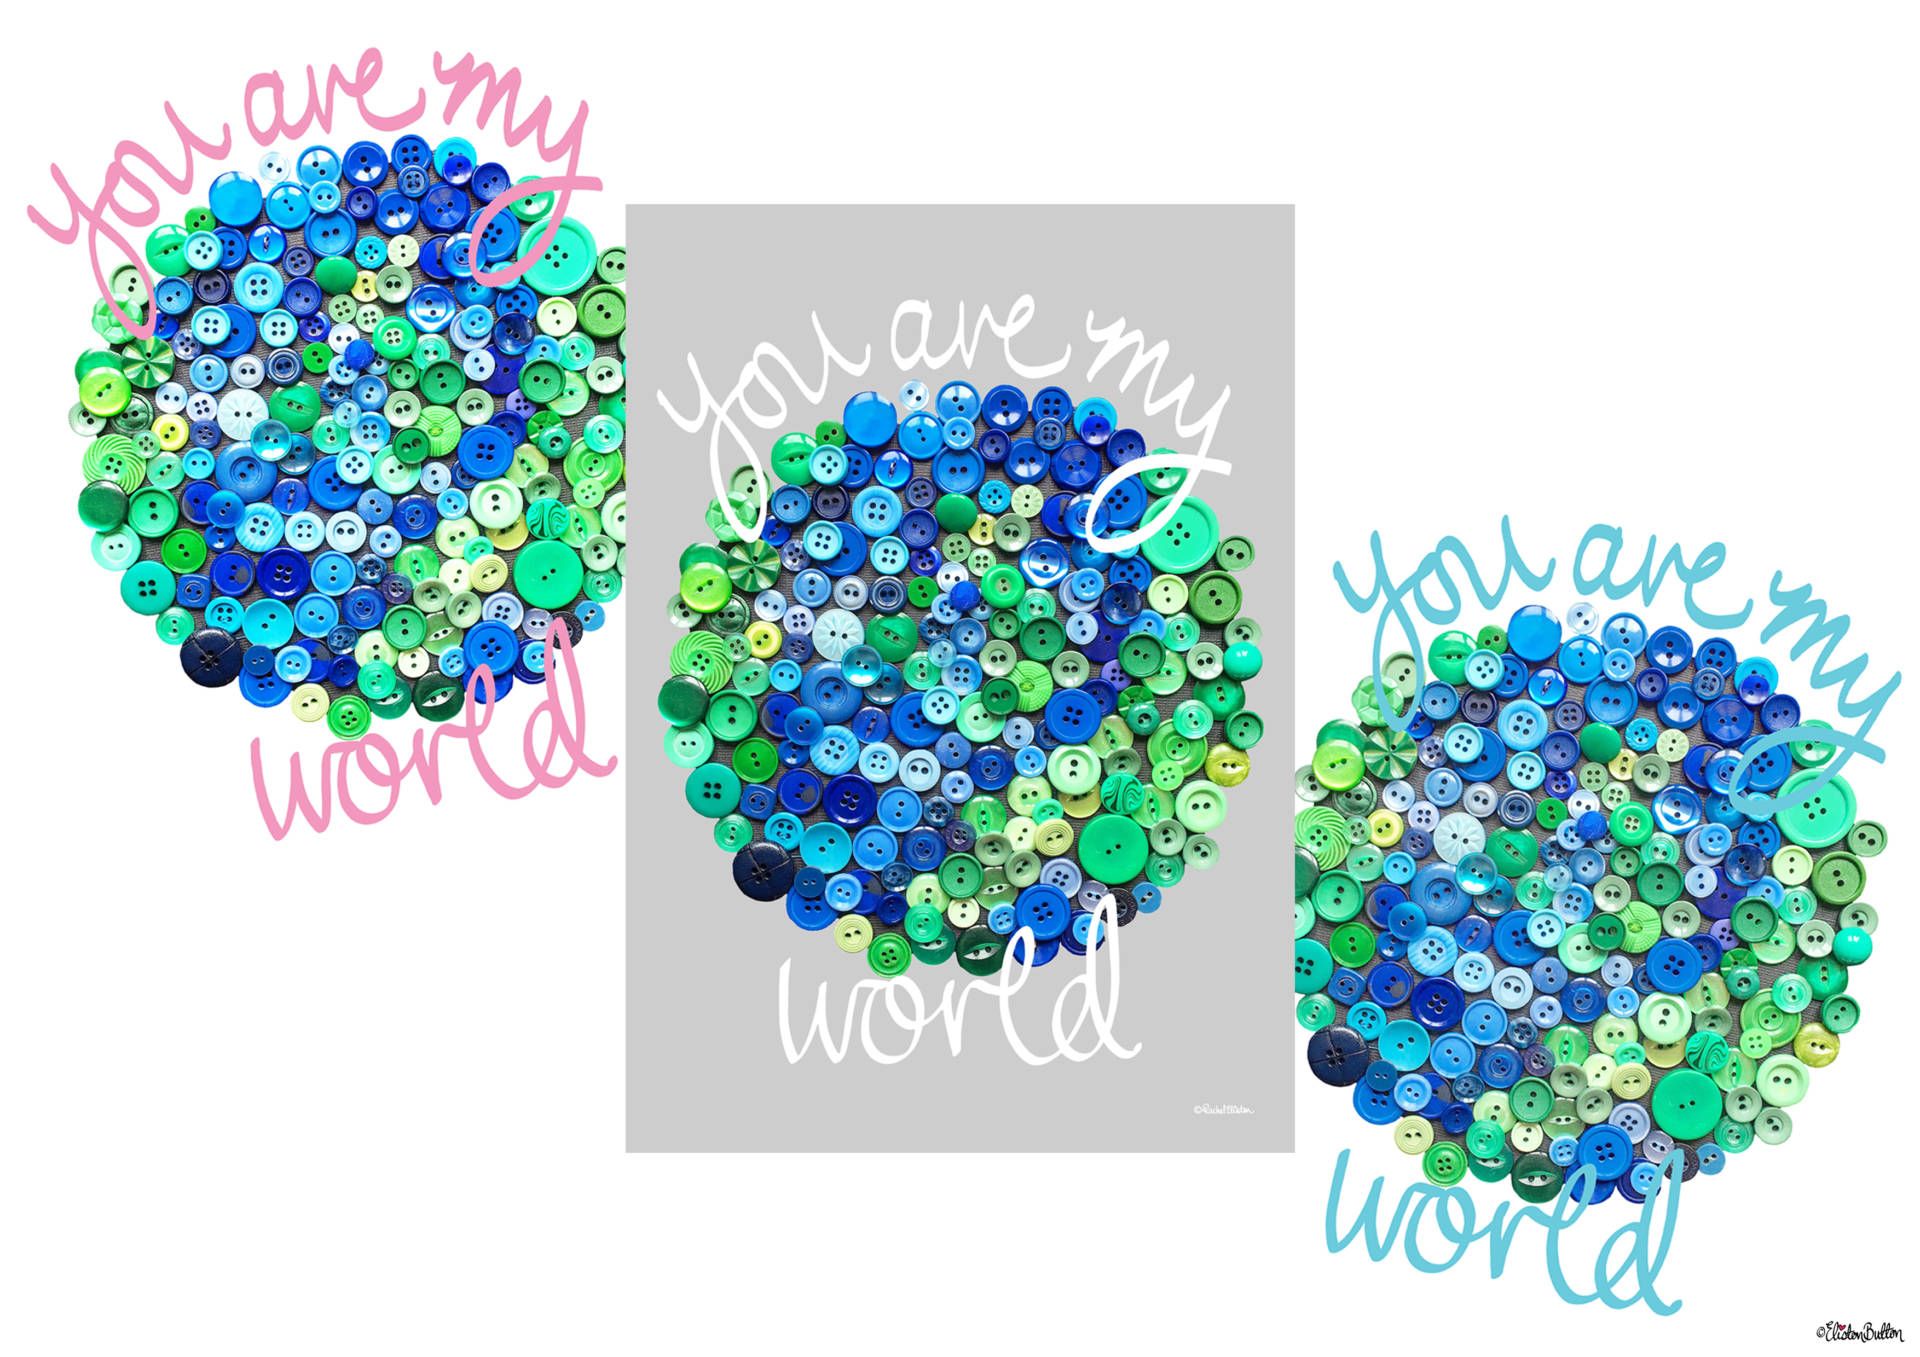 You are my World Button Art Quote Prints by Eliston Button Colour Option Variations - Create 30 - No. 13 - 'You Are My World' Button Art Quote Prints at www.elistonbutton.com - Eliston Button - That Crafty Kid – Art, Design, Craft & Adventure.